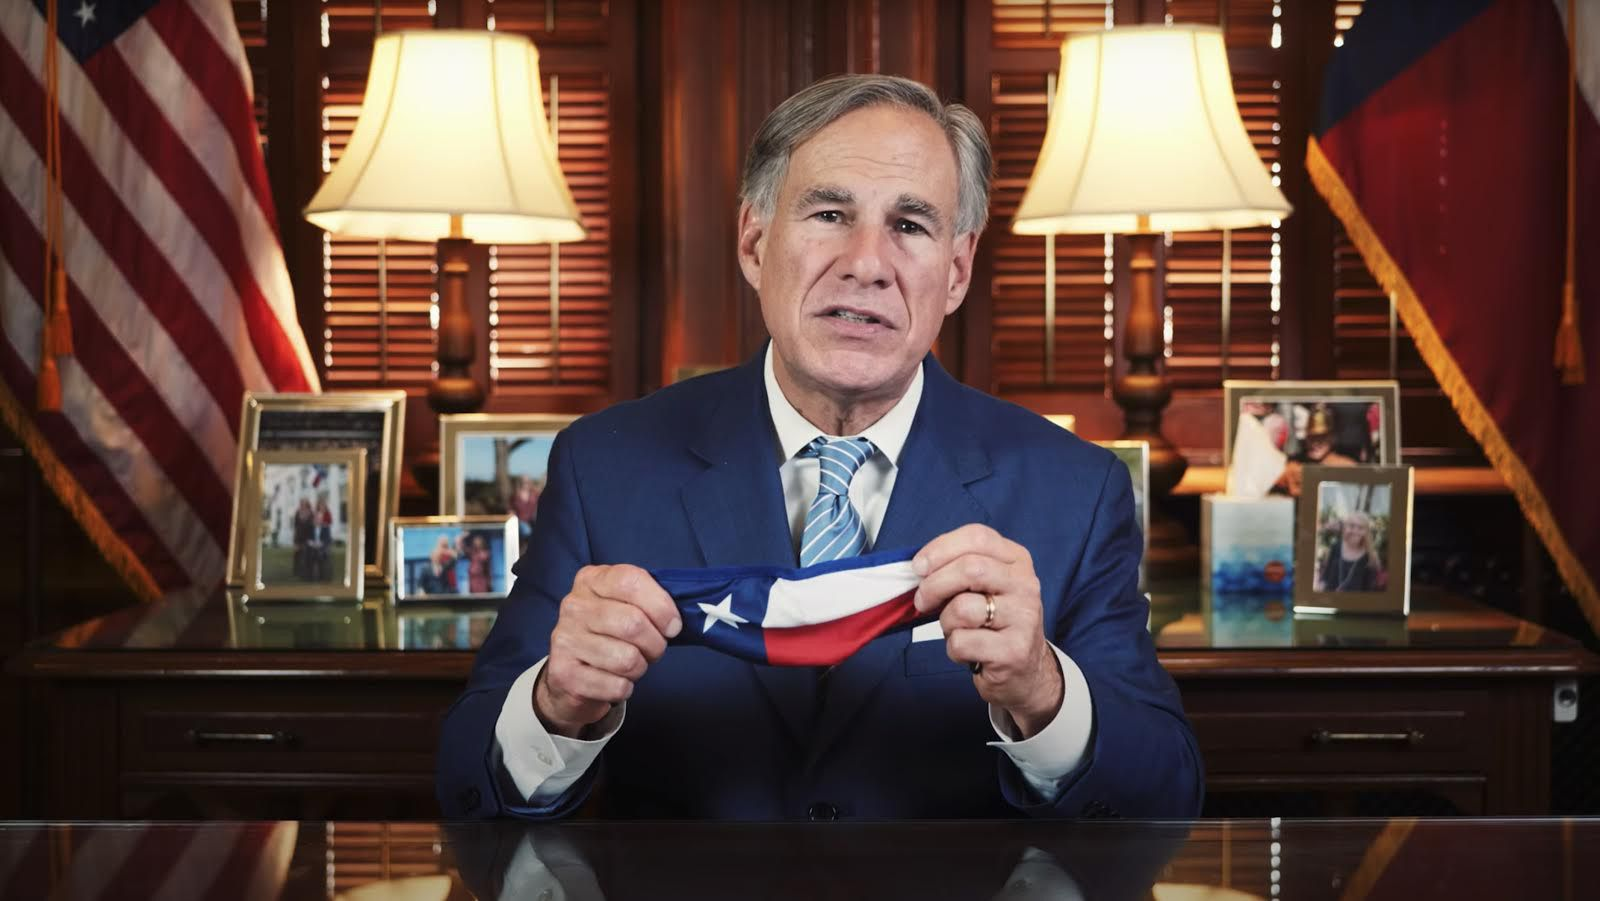 Texas Governor Greg Abbott holds up a mask during his state mandate that requires all Texans to wear a mask to help fight the spread of coronavirus. Abbott made the announcement on Thursday, July 2, 2020 from Austin, Texas. (Screen shot from Abbott's YouTube channel)